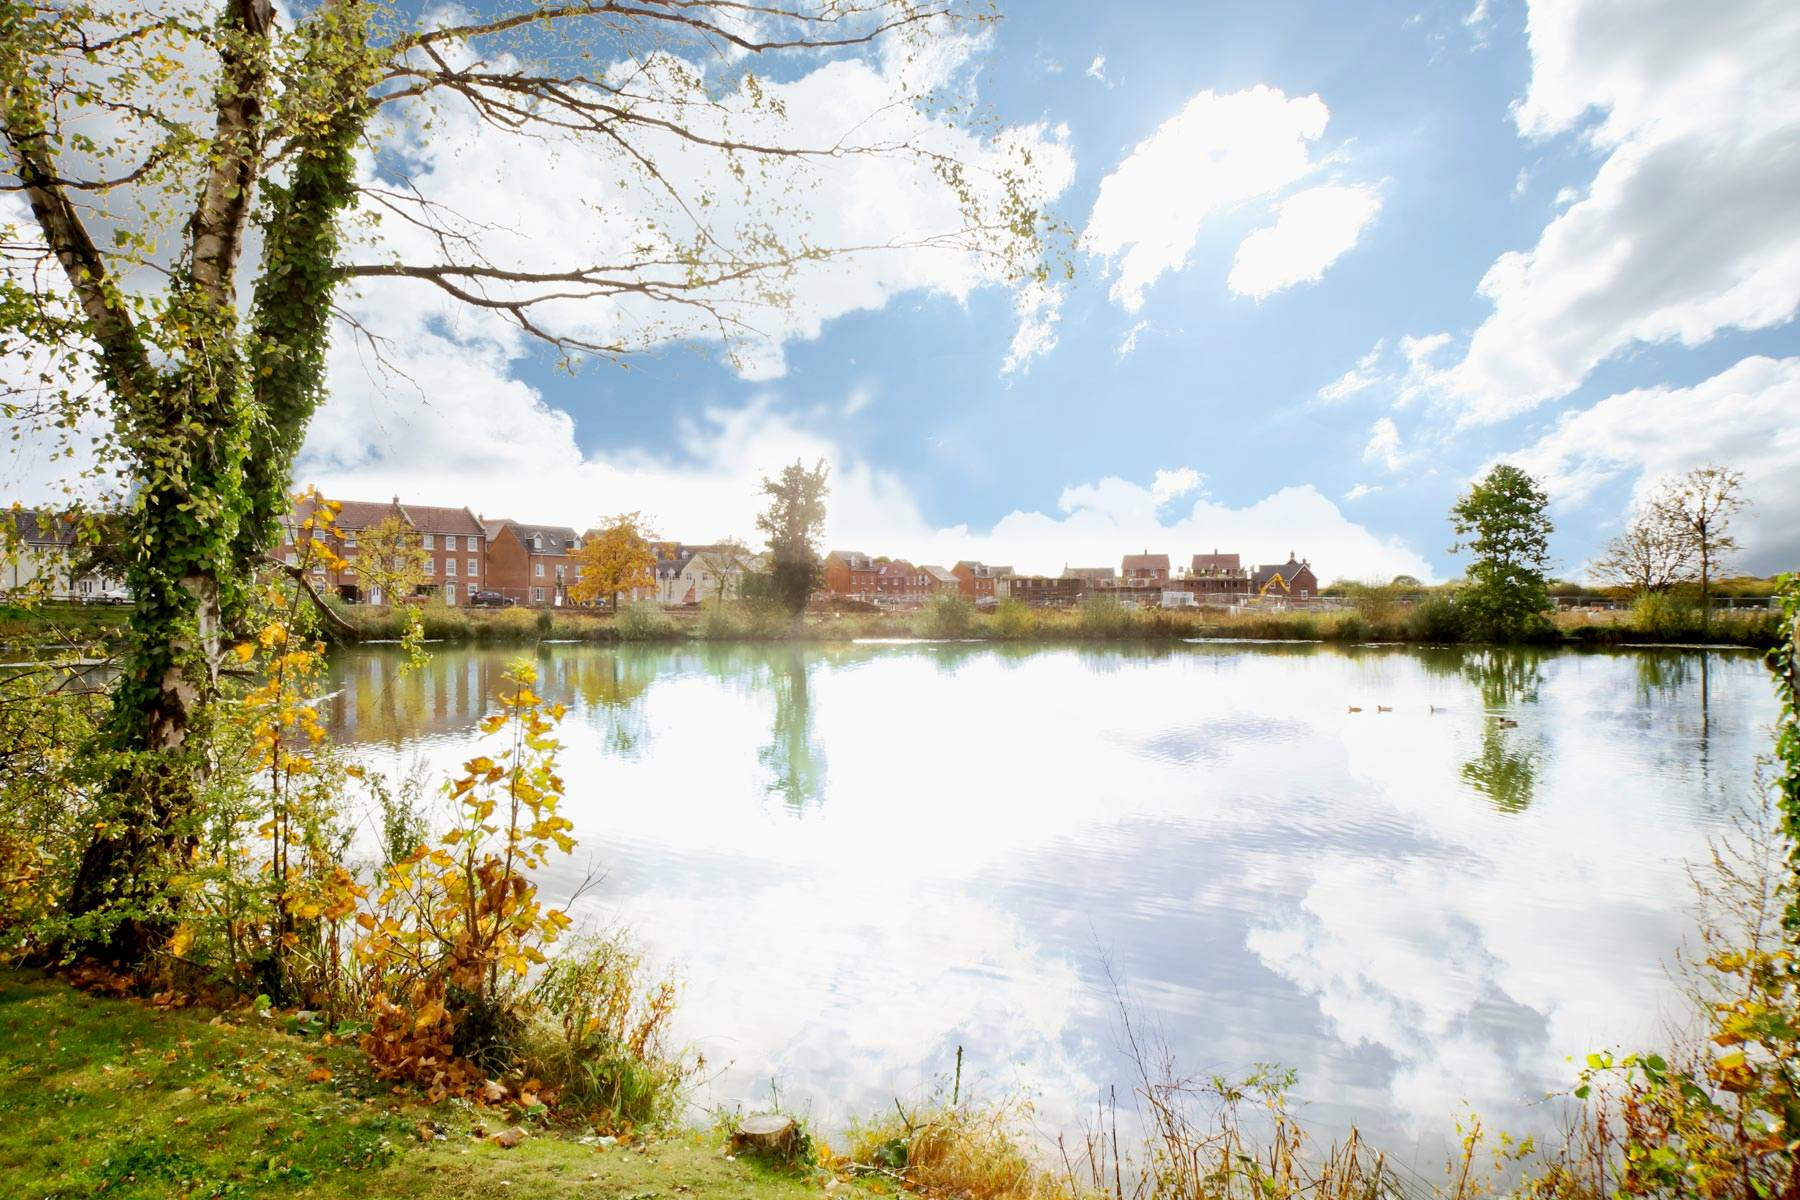 Photo of the lake area within the Parklands development